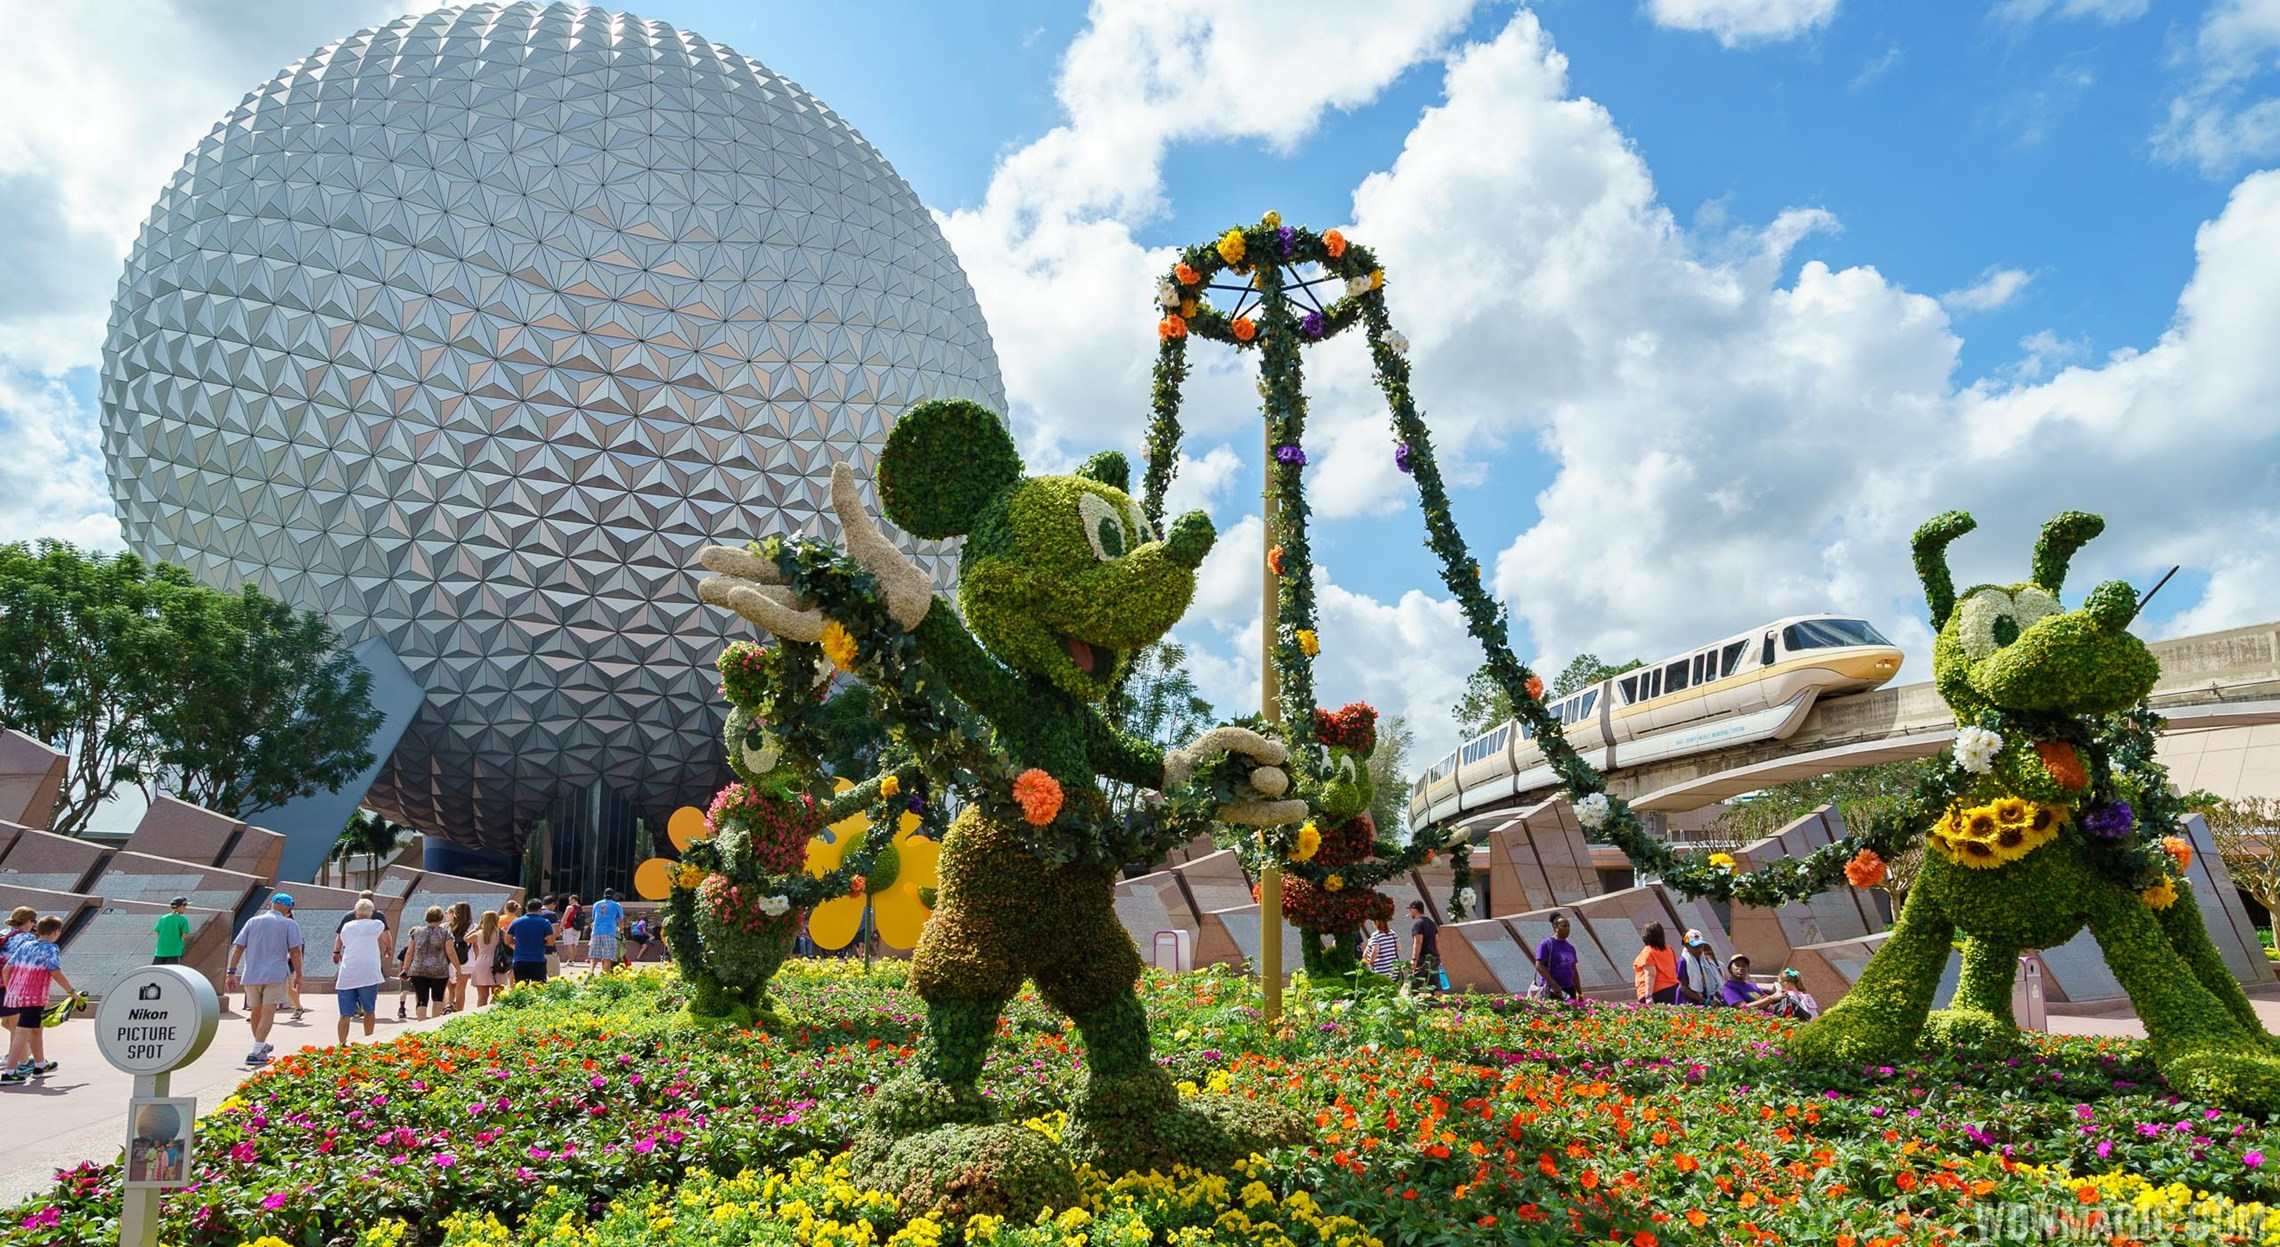 Photos from the 2017 Epcot Flower and Garden Festival